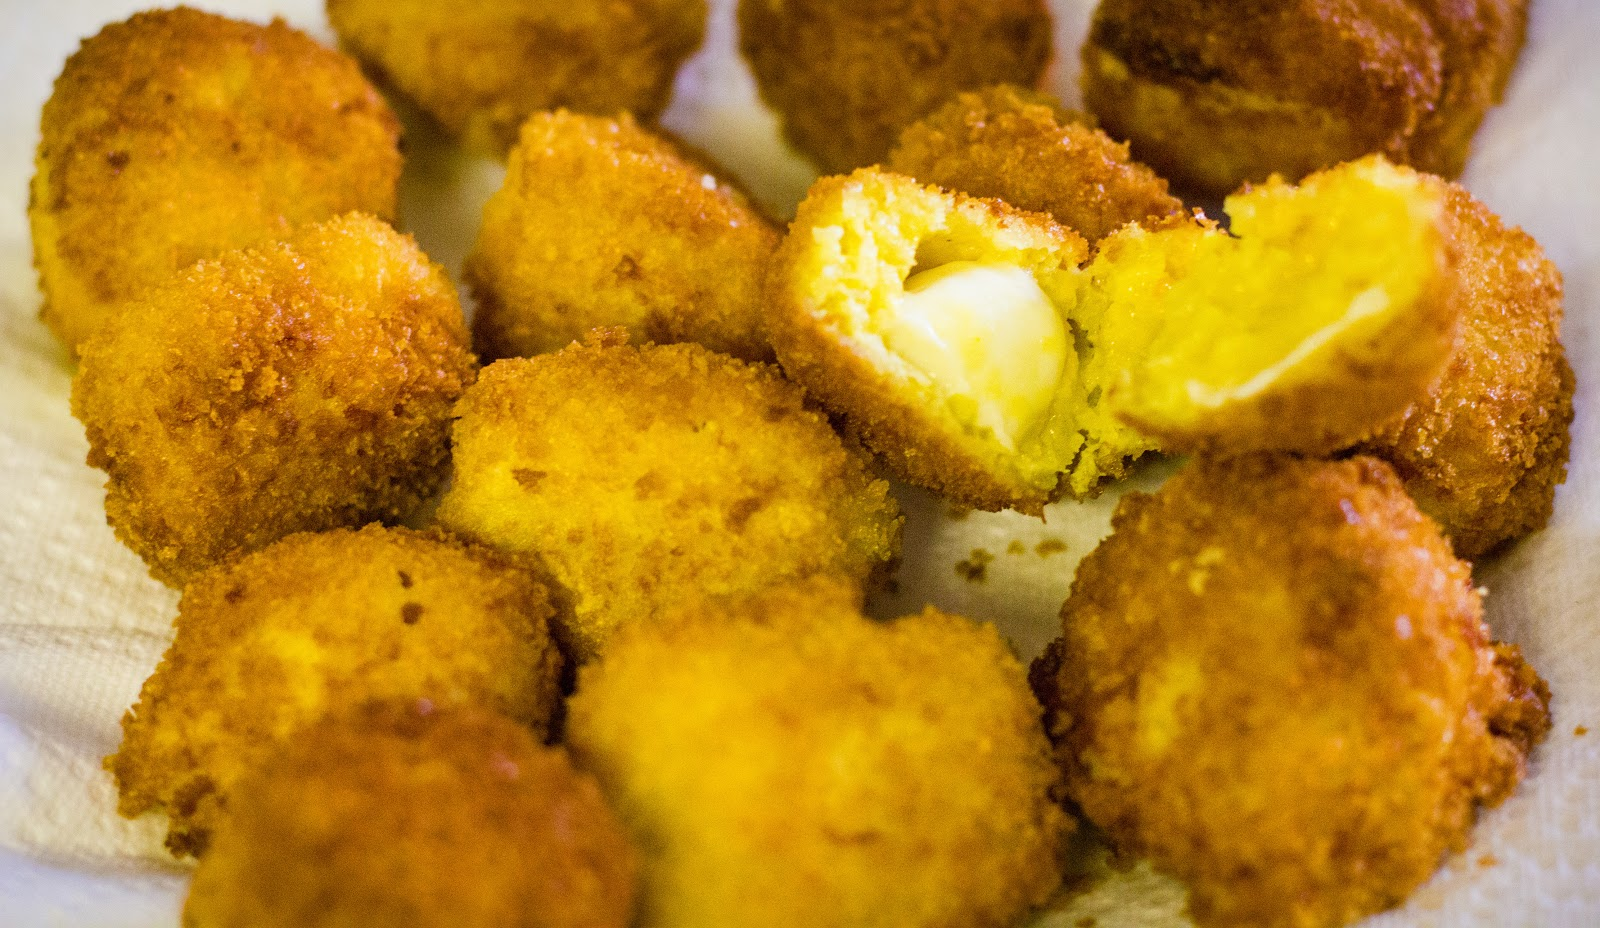 37 Cooks: Saffron Risotto AND Fried Rice Balls Stuffed with Cheese